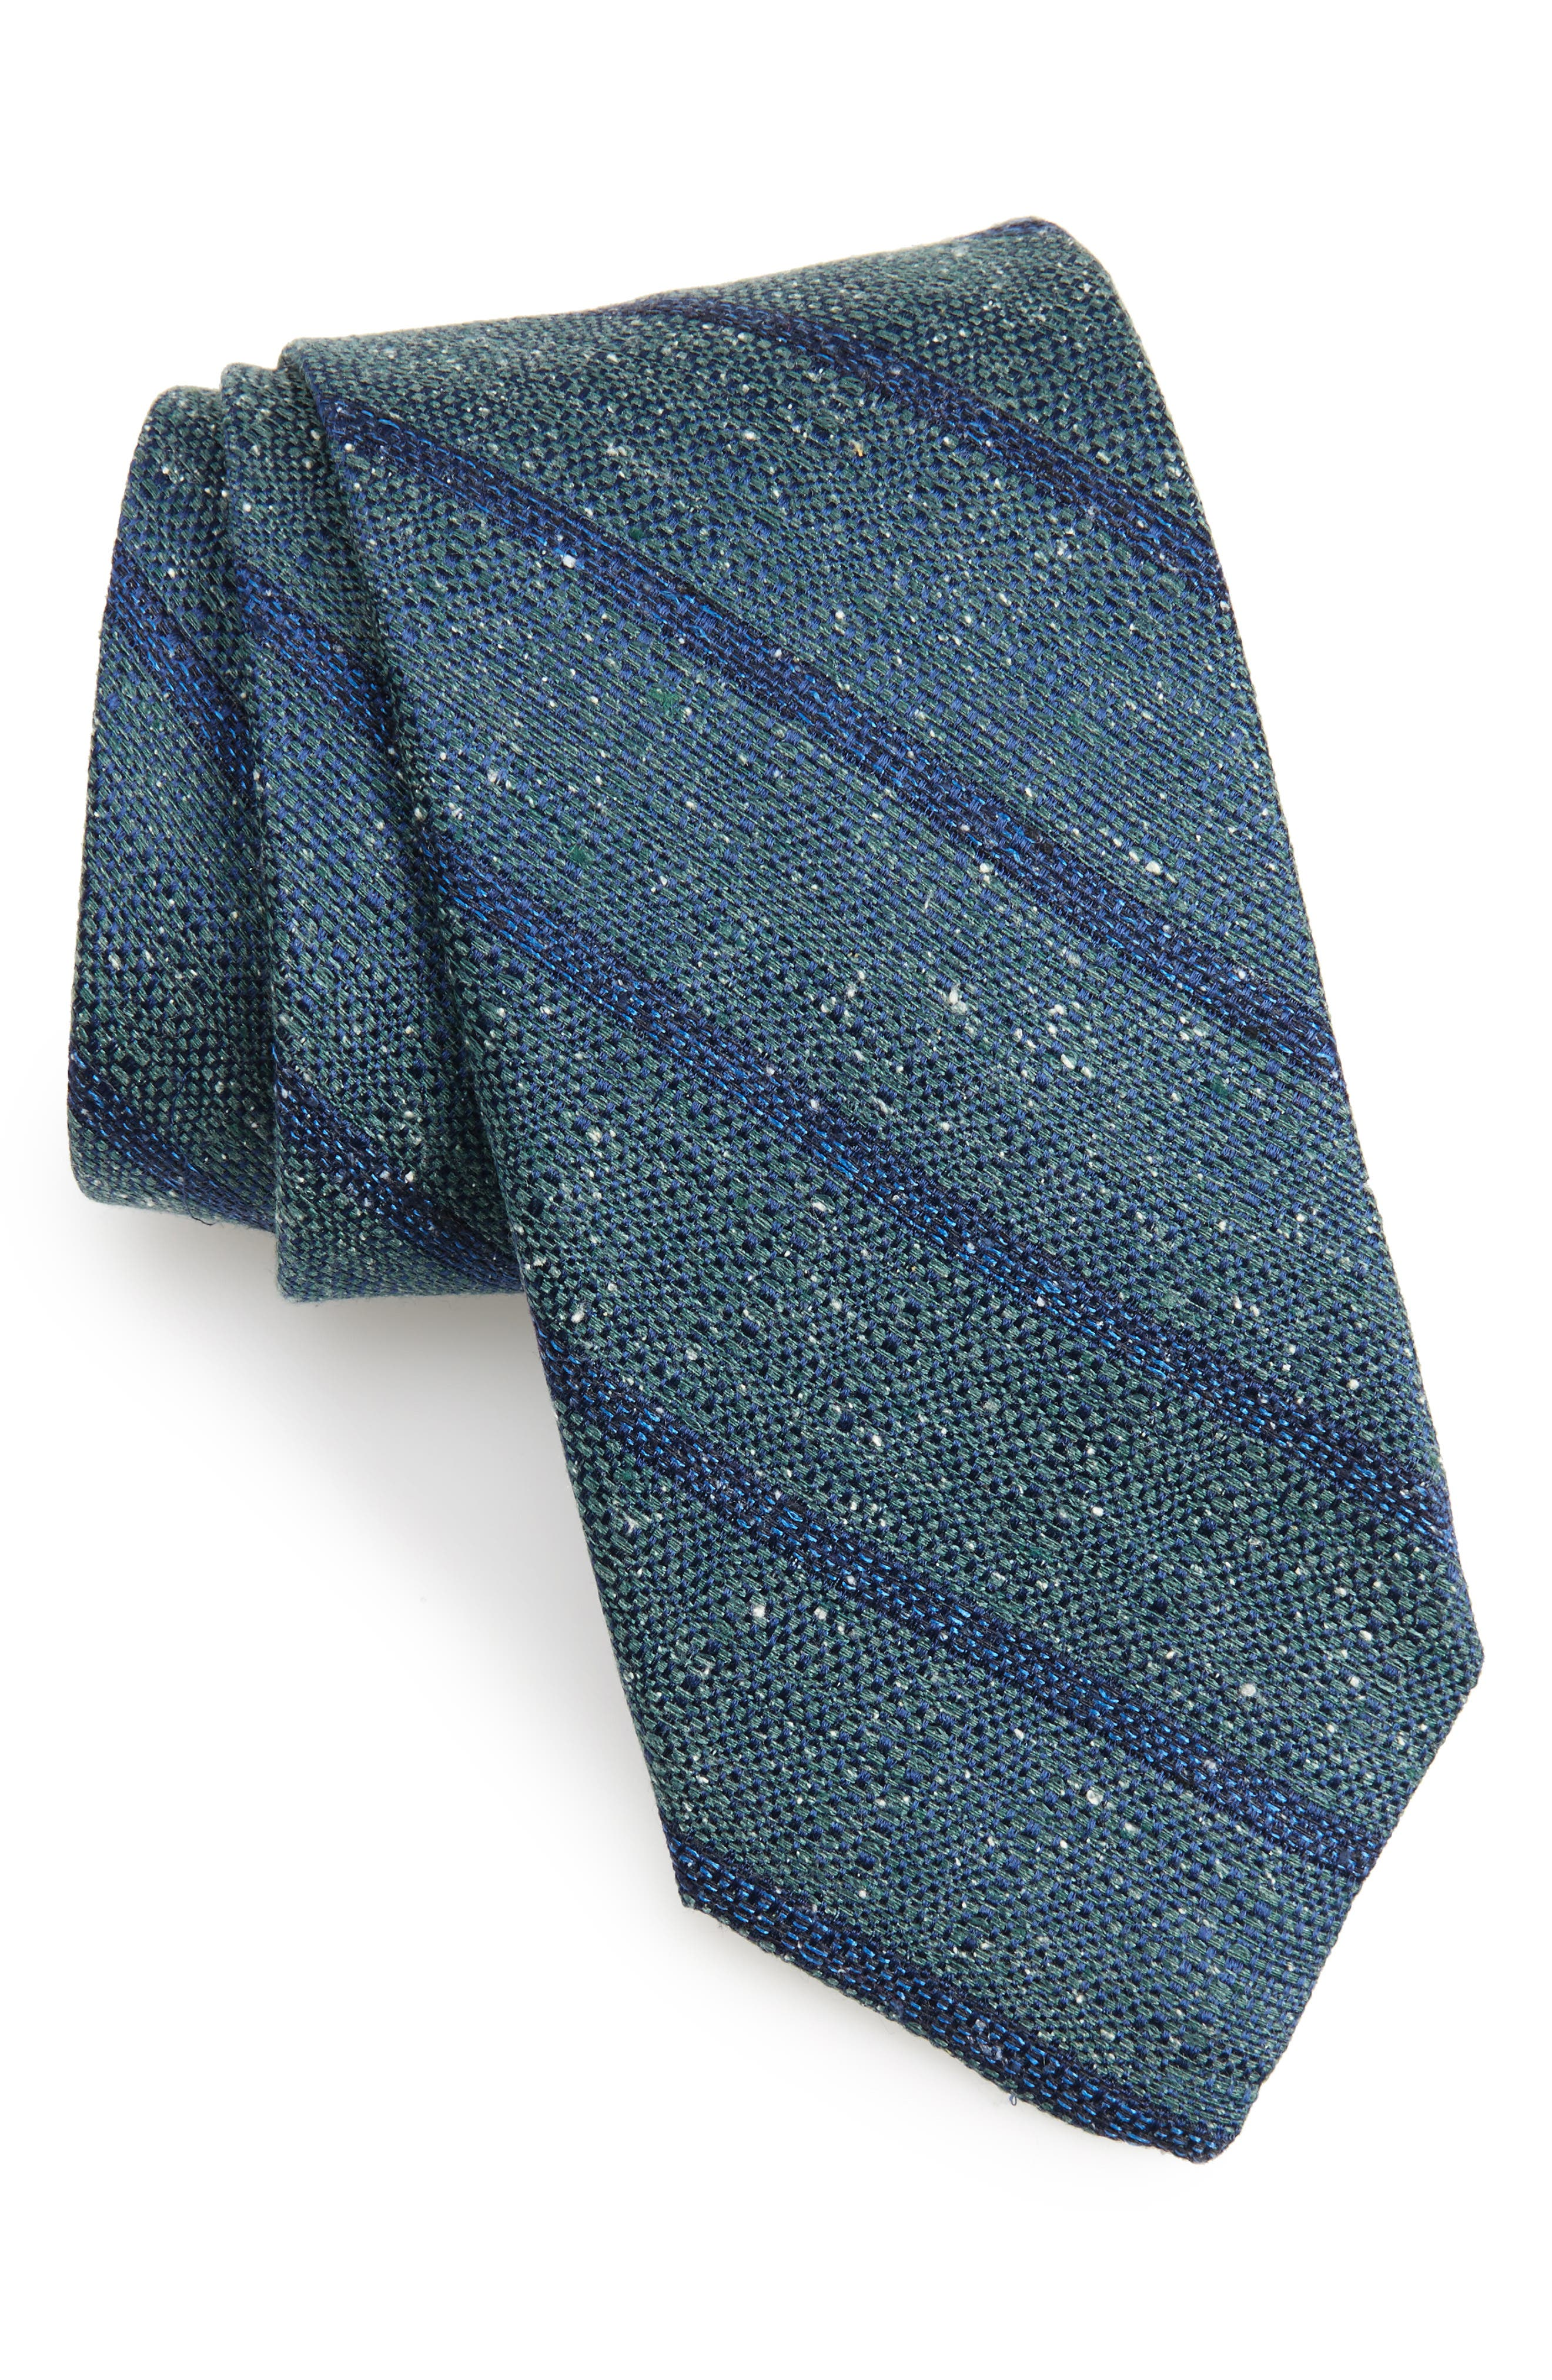 Armstrong Stripe Silk Tie,                             Main thumbnail 1, color,                             320